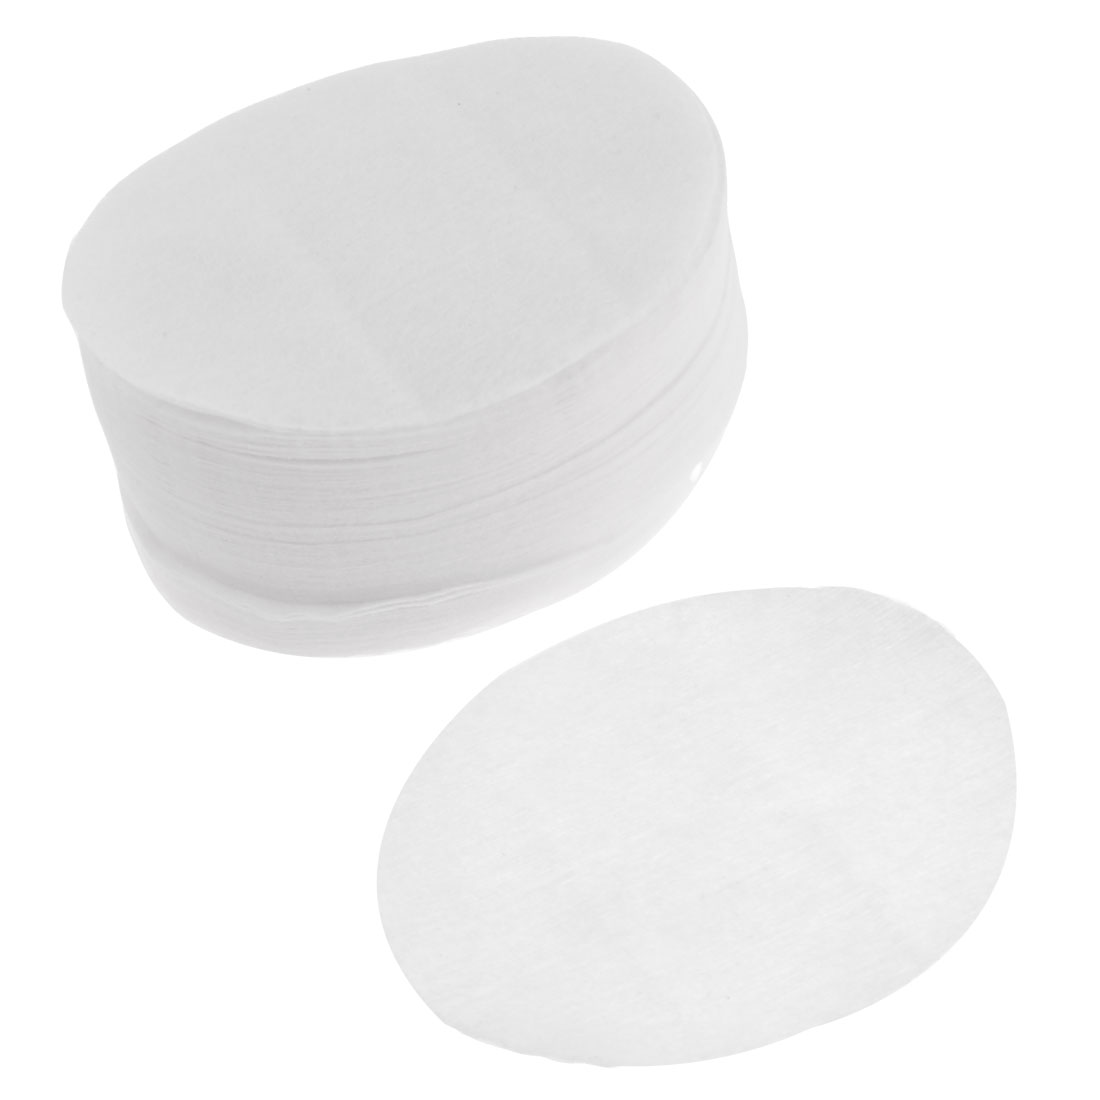 Make Up Oval Shape White Facial Cotton Pads 100 Pcs for Lady